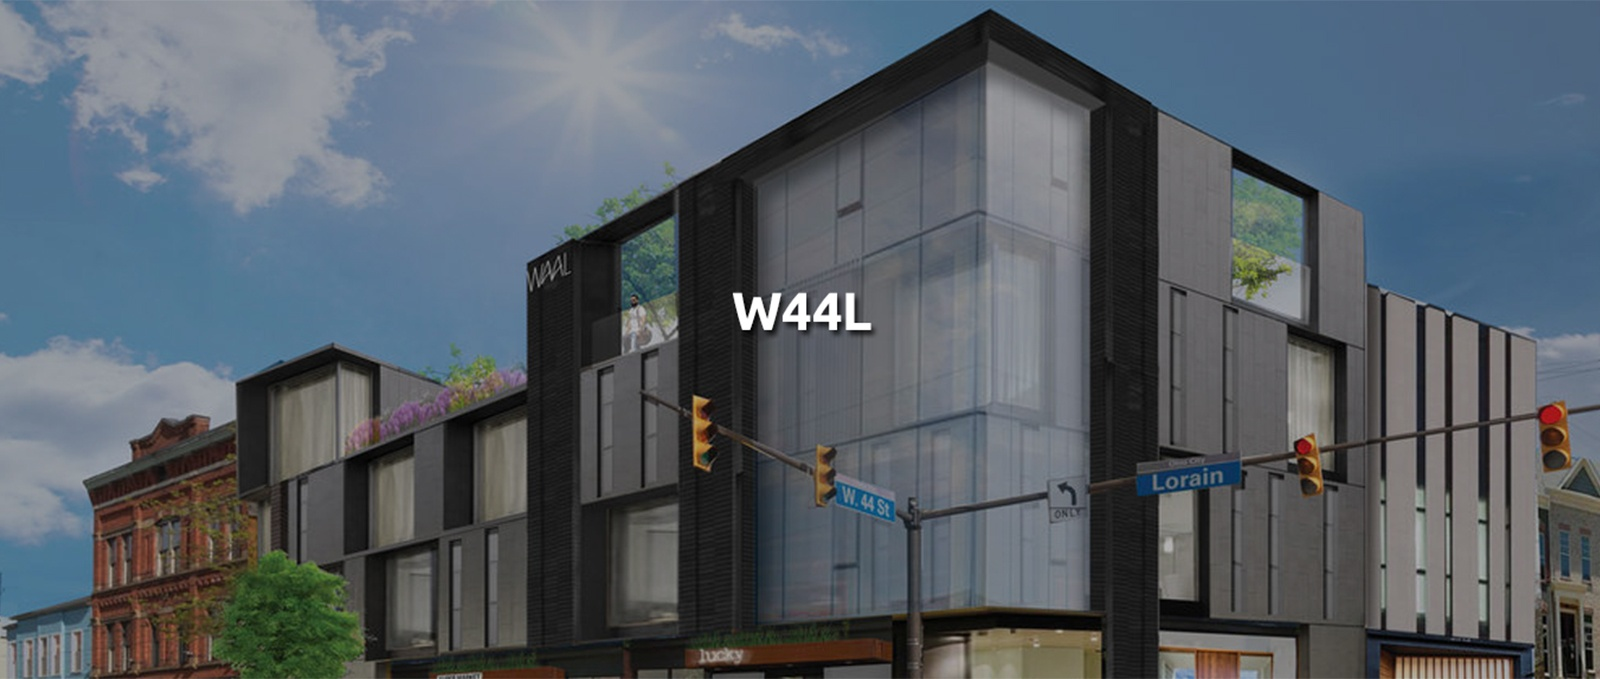 W44L - Commercial Building Architecture Cleveland by redhouse studio